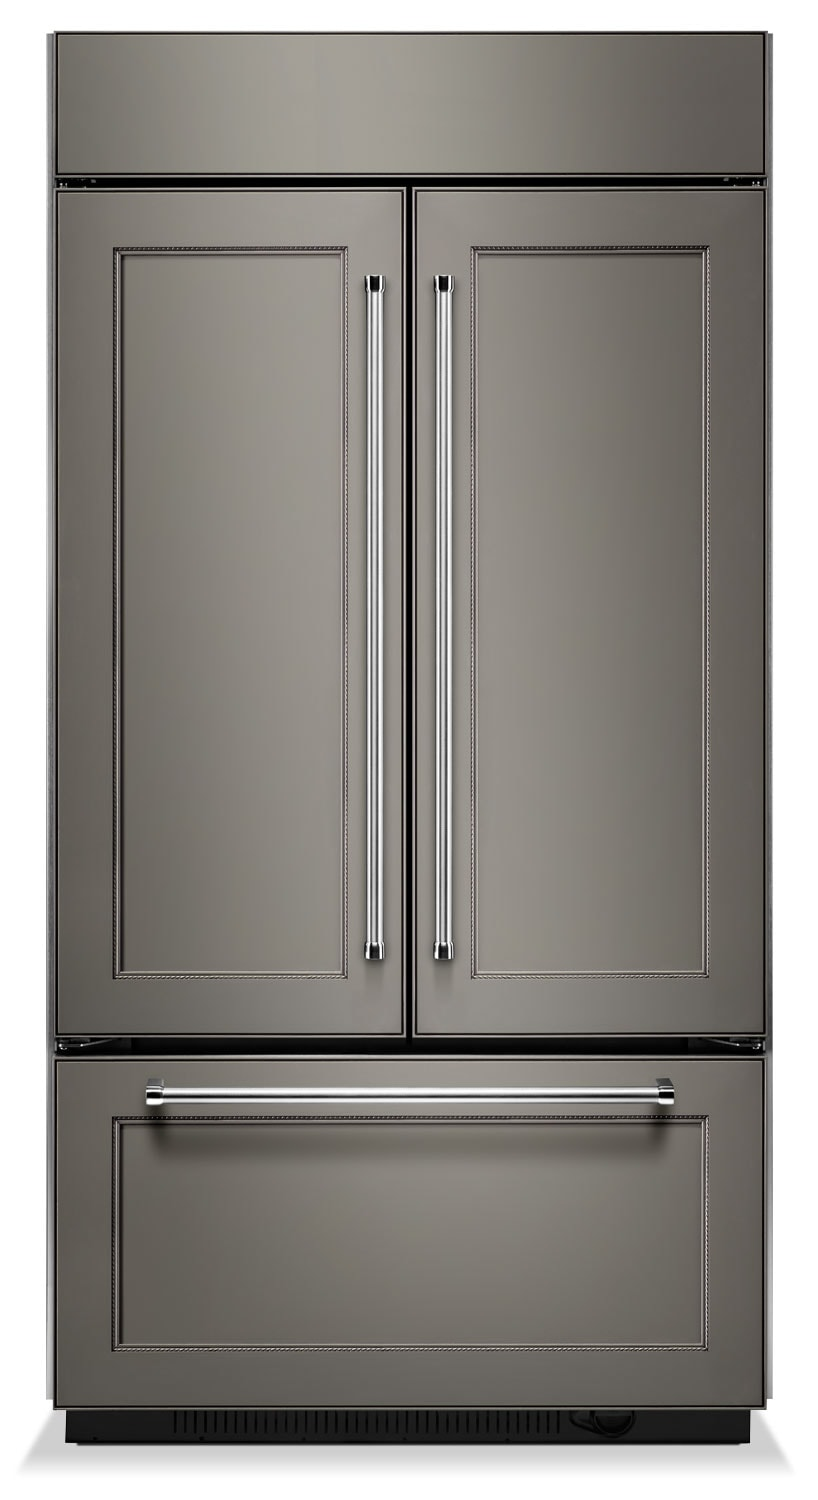 KitchenAid 24.2 Cu. Ft. Built-In French-Door Refrigerator – KBFN402EPA